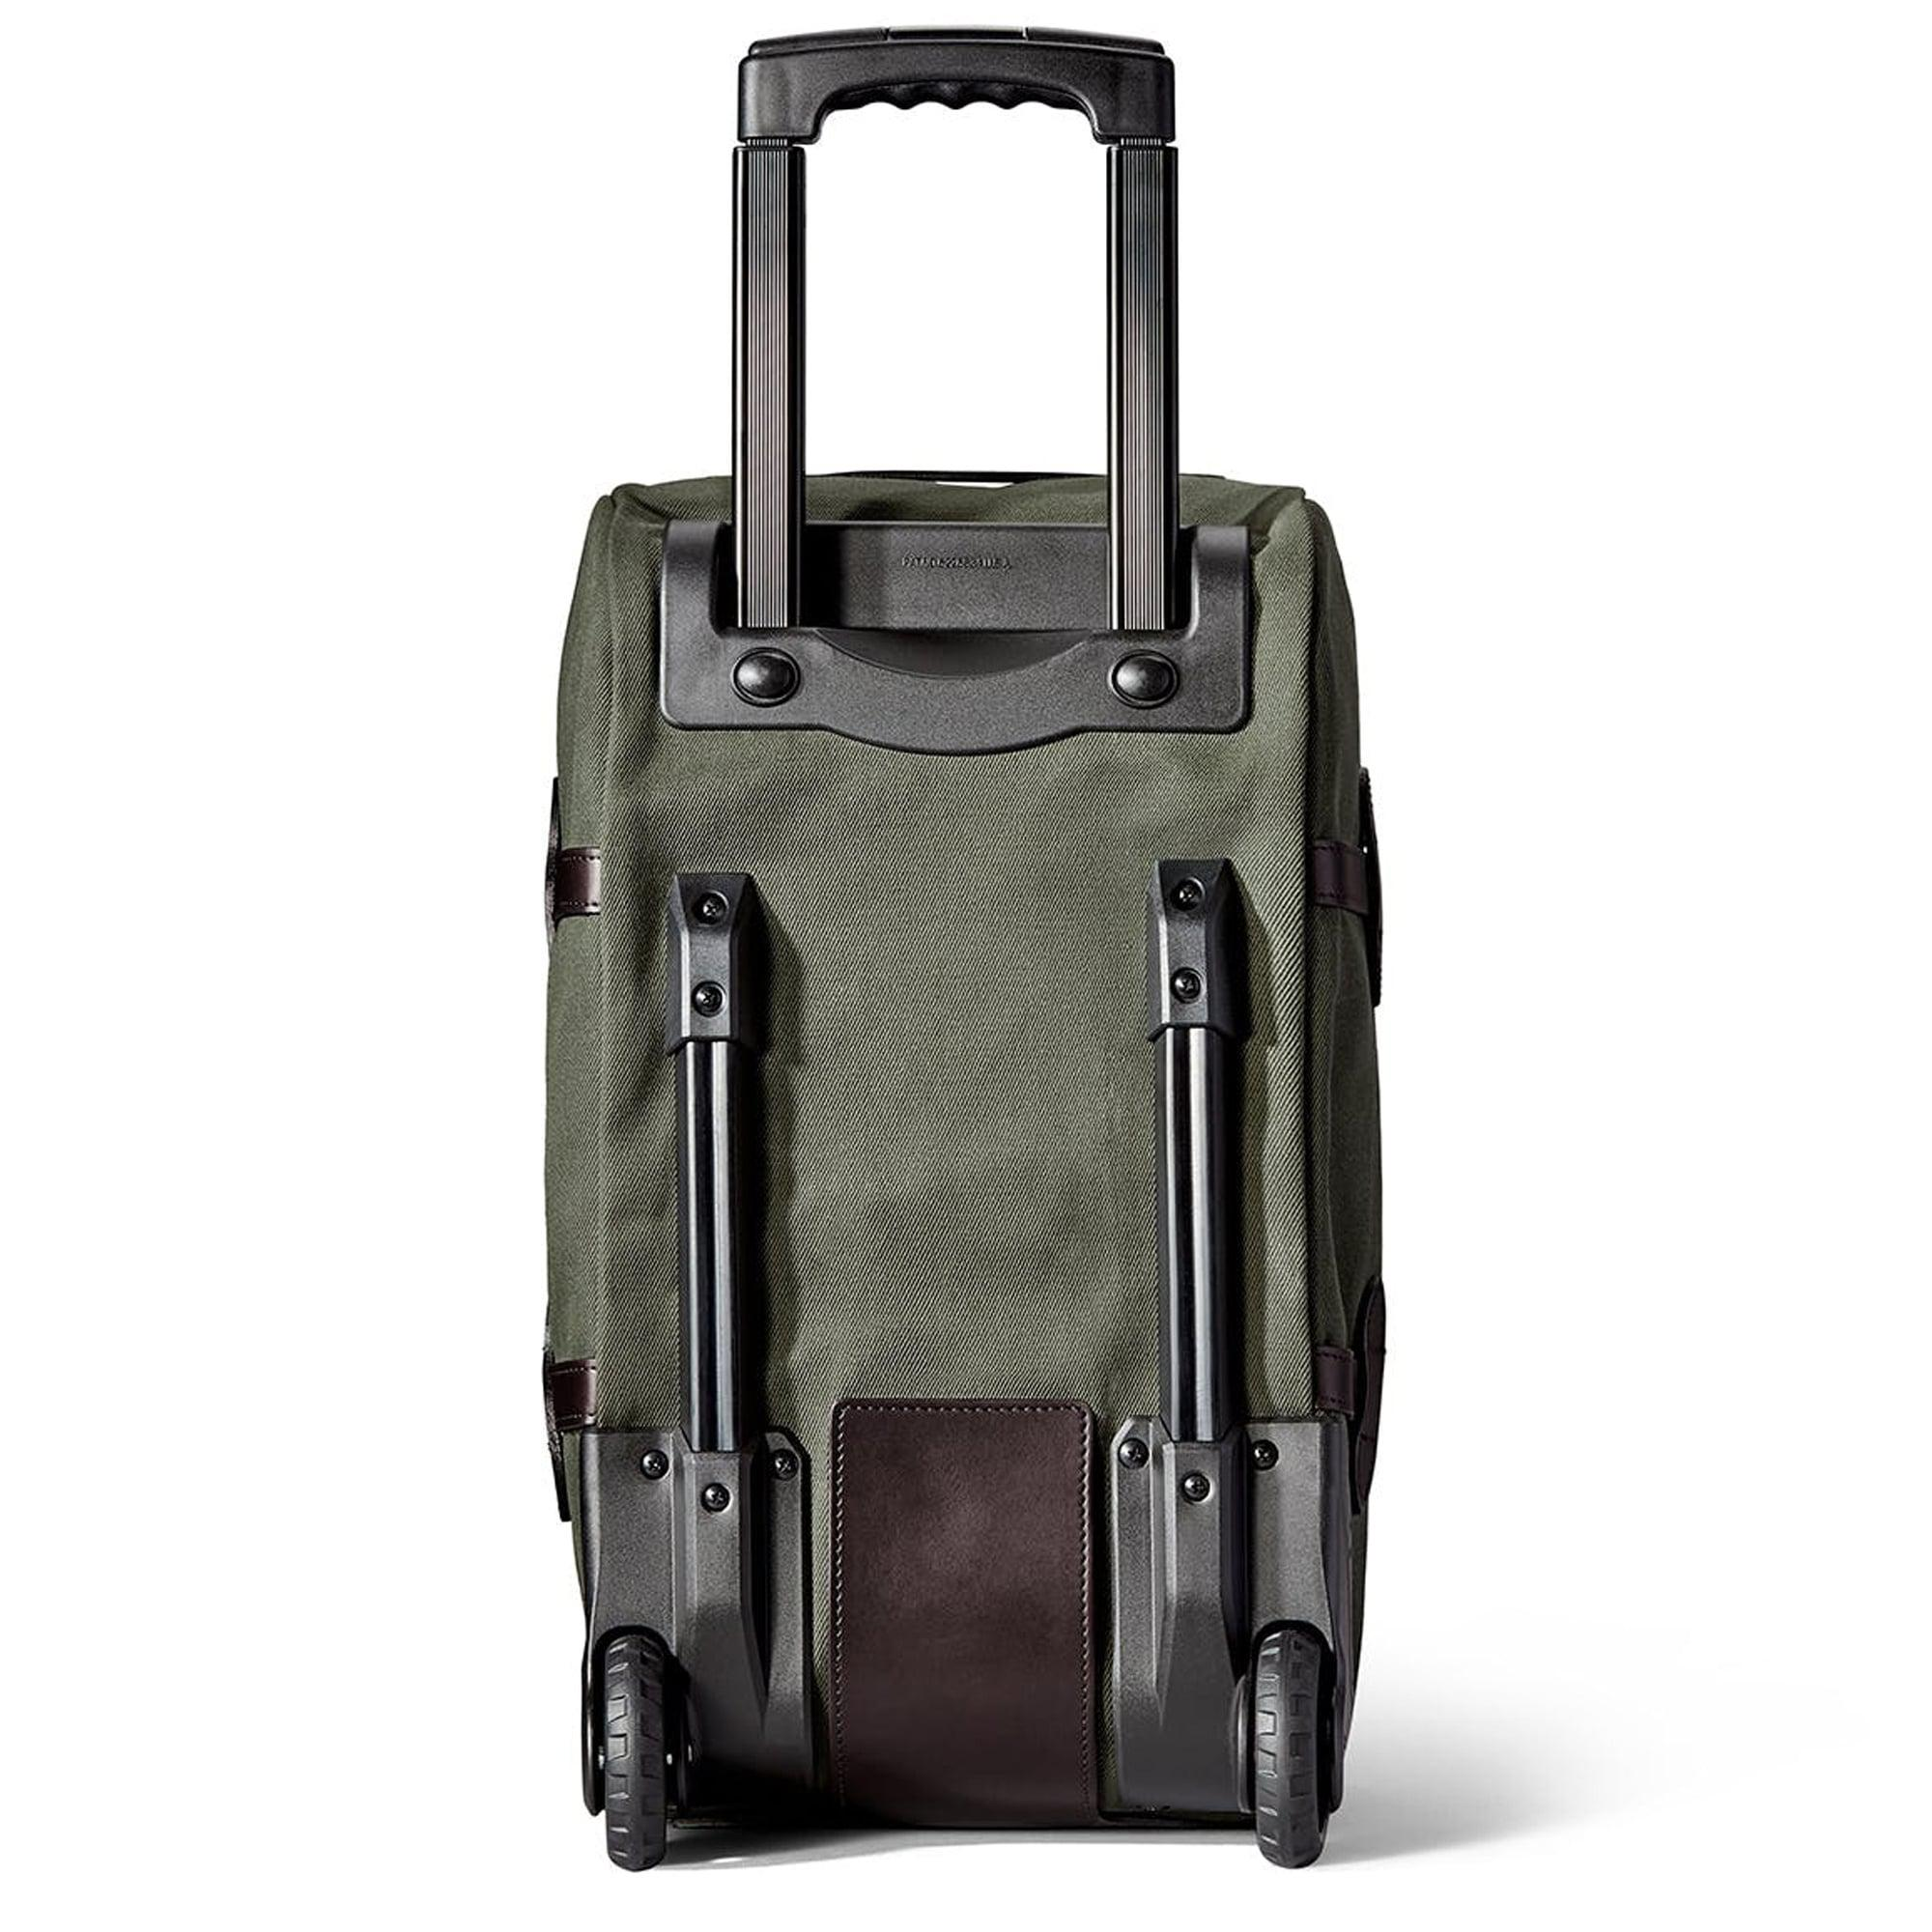 19a6f6e2f3 Filson - Small Rolling Duffle Bag - Otter Green for Men - Lyst. View  fullscreen